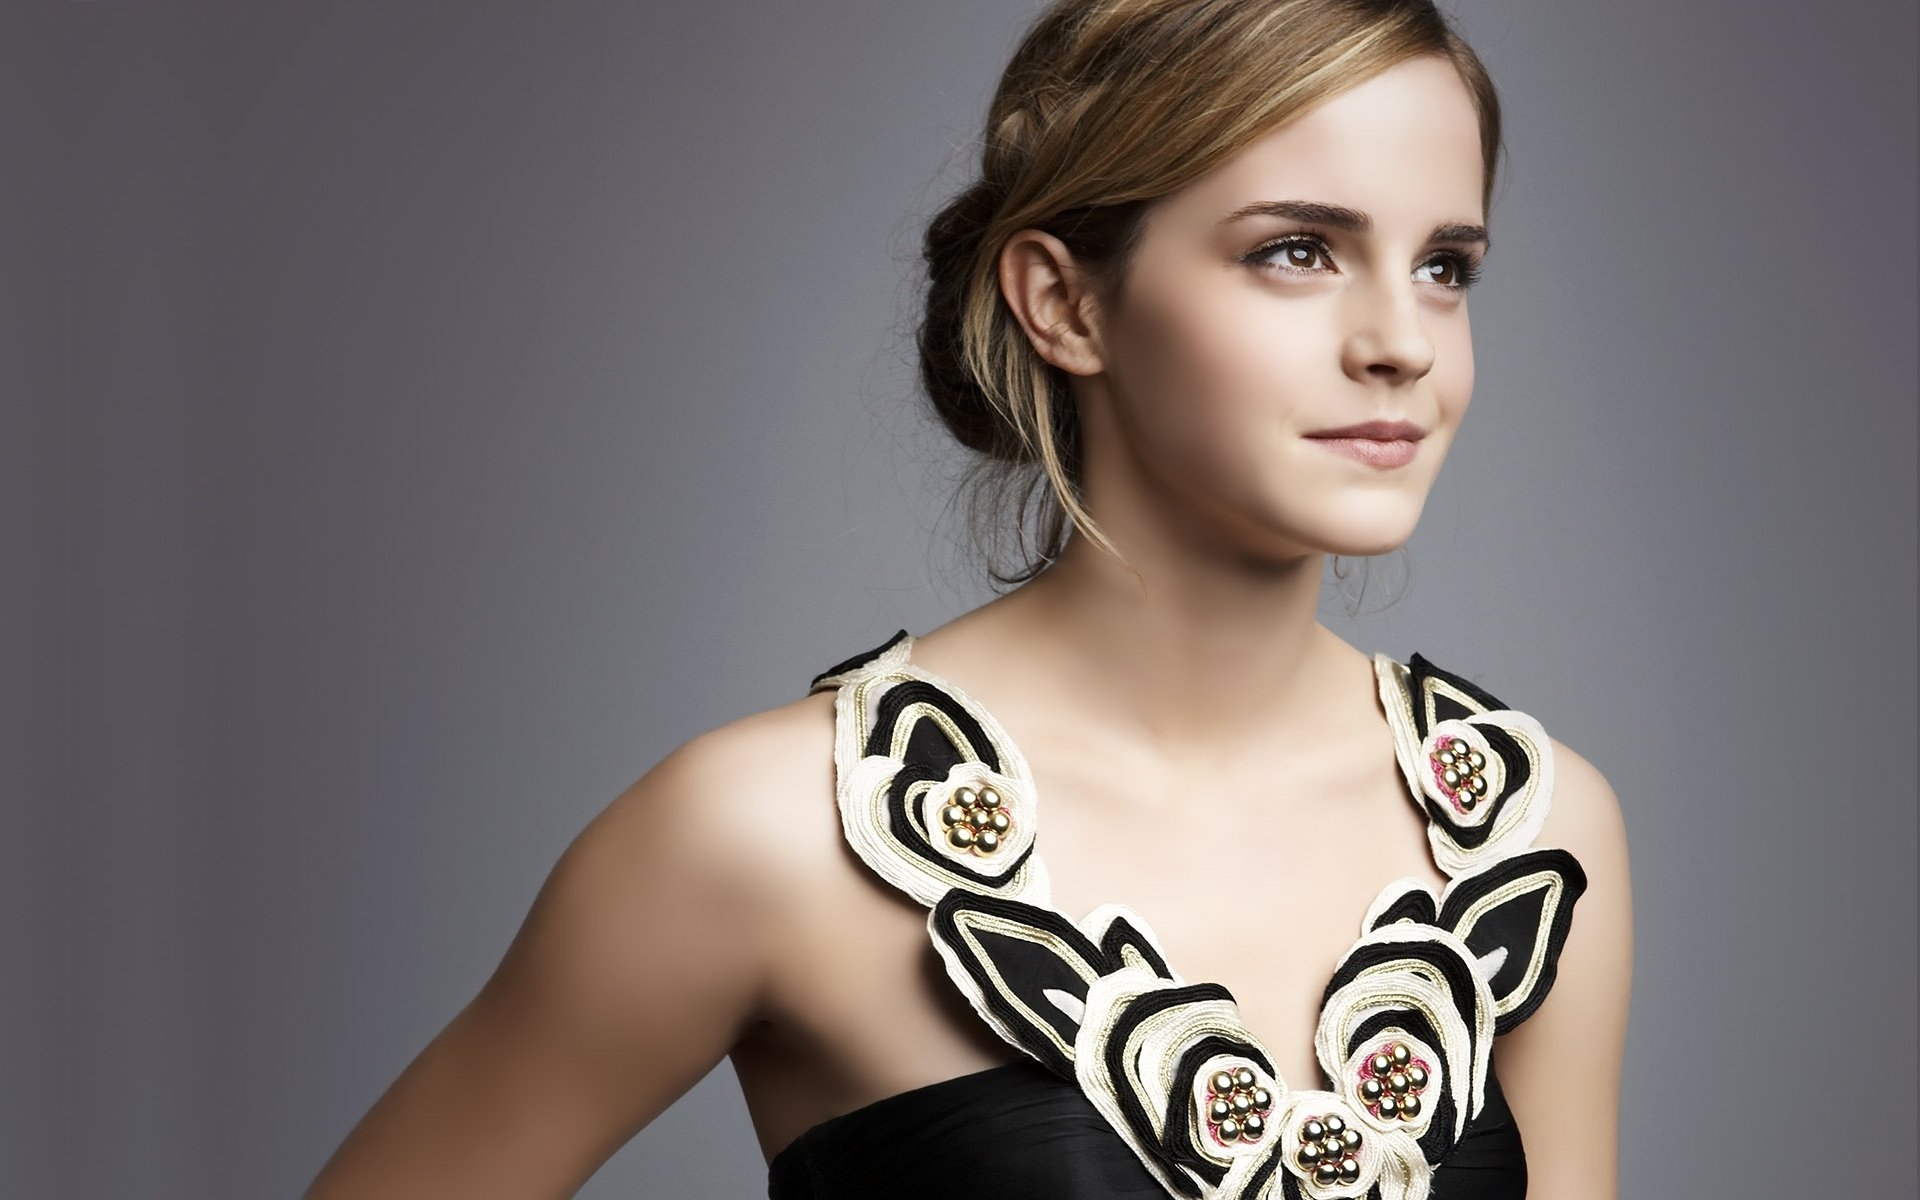 612 emma watson hd wallpapers | background images - wallpaper abyss